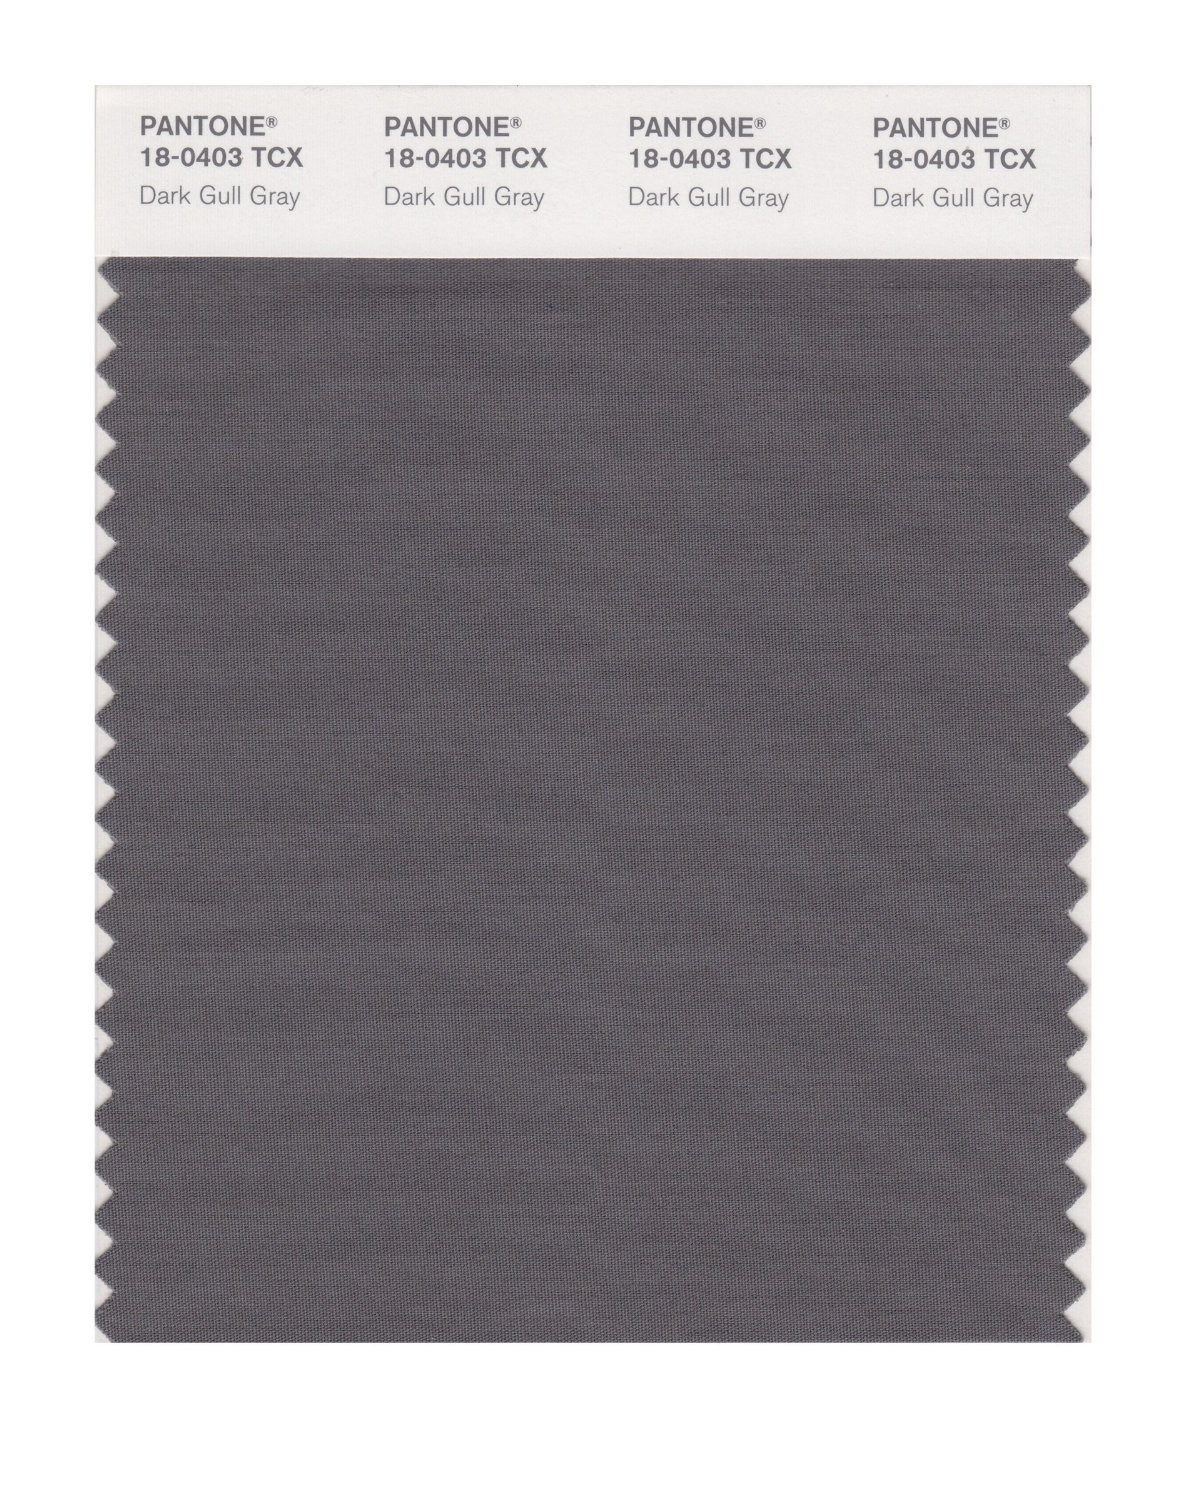 Pantone 18-0420 TCX Swatch Card Four Leaf Clover